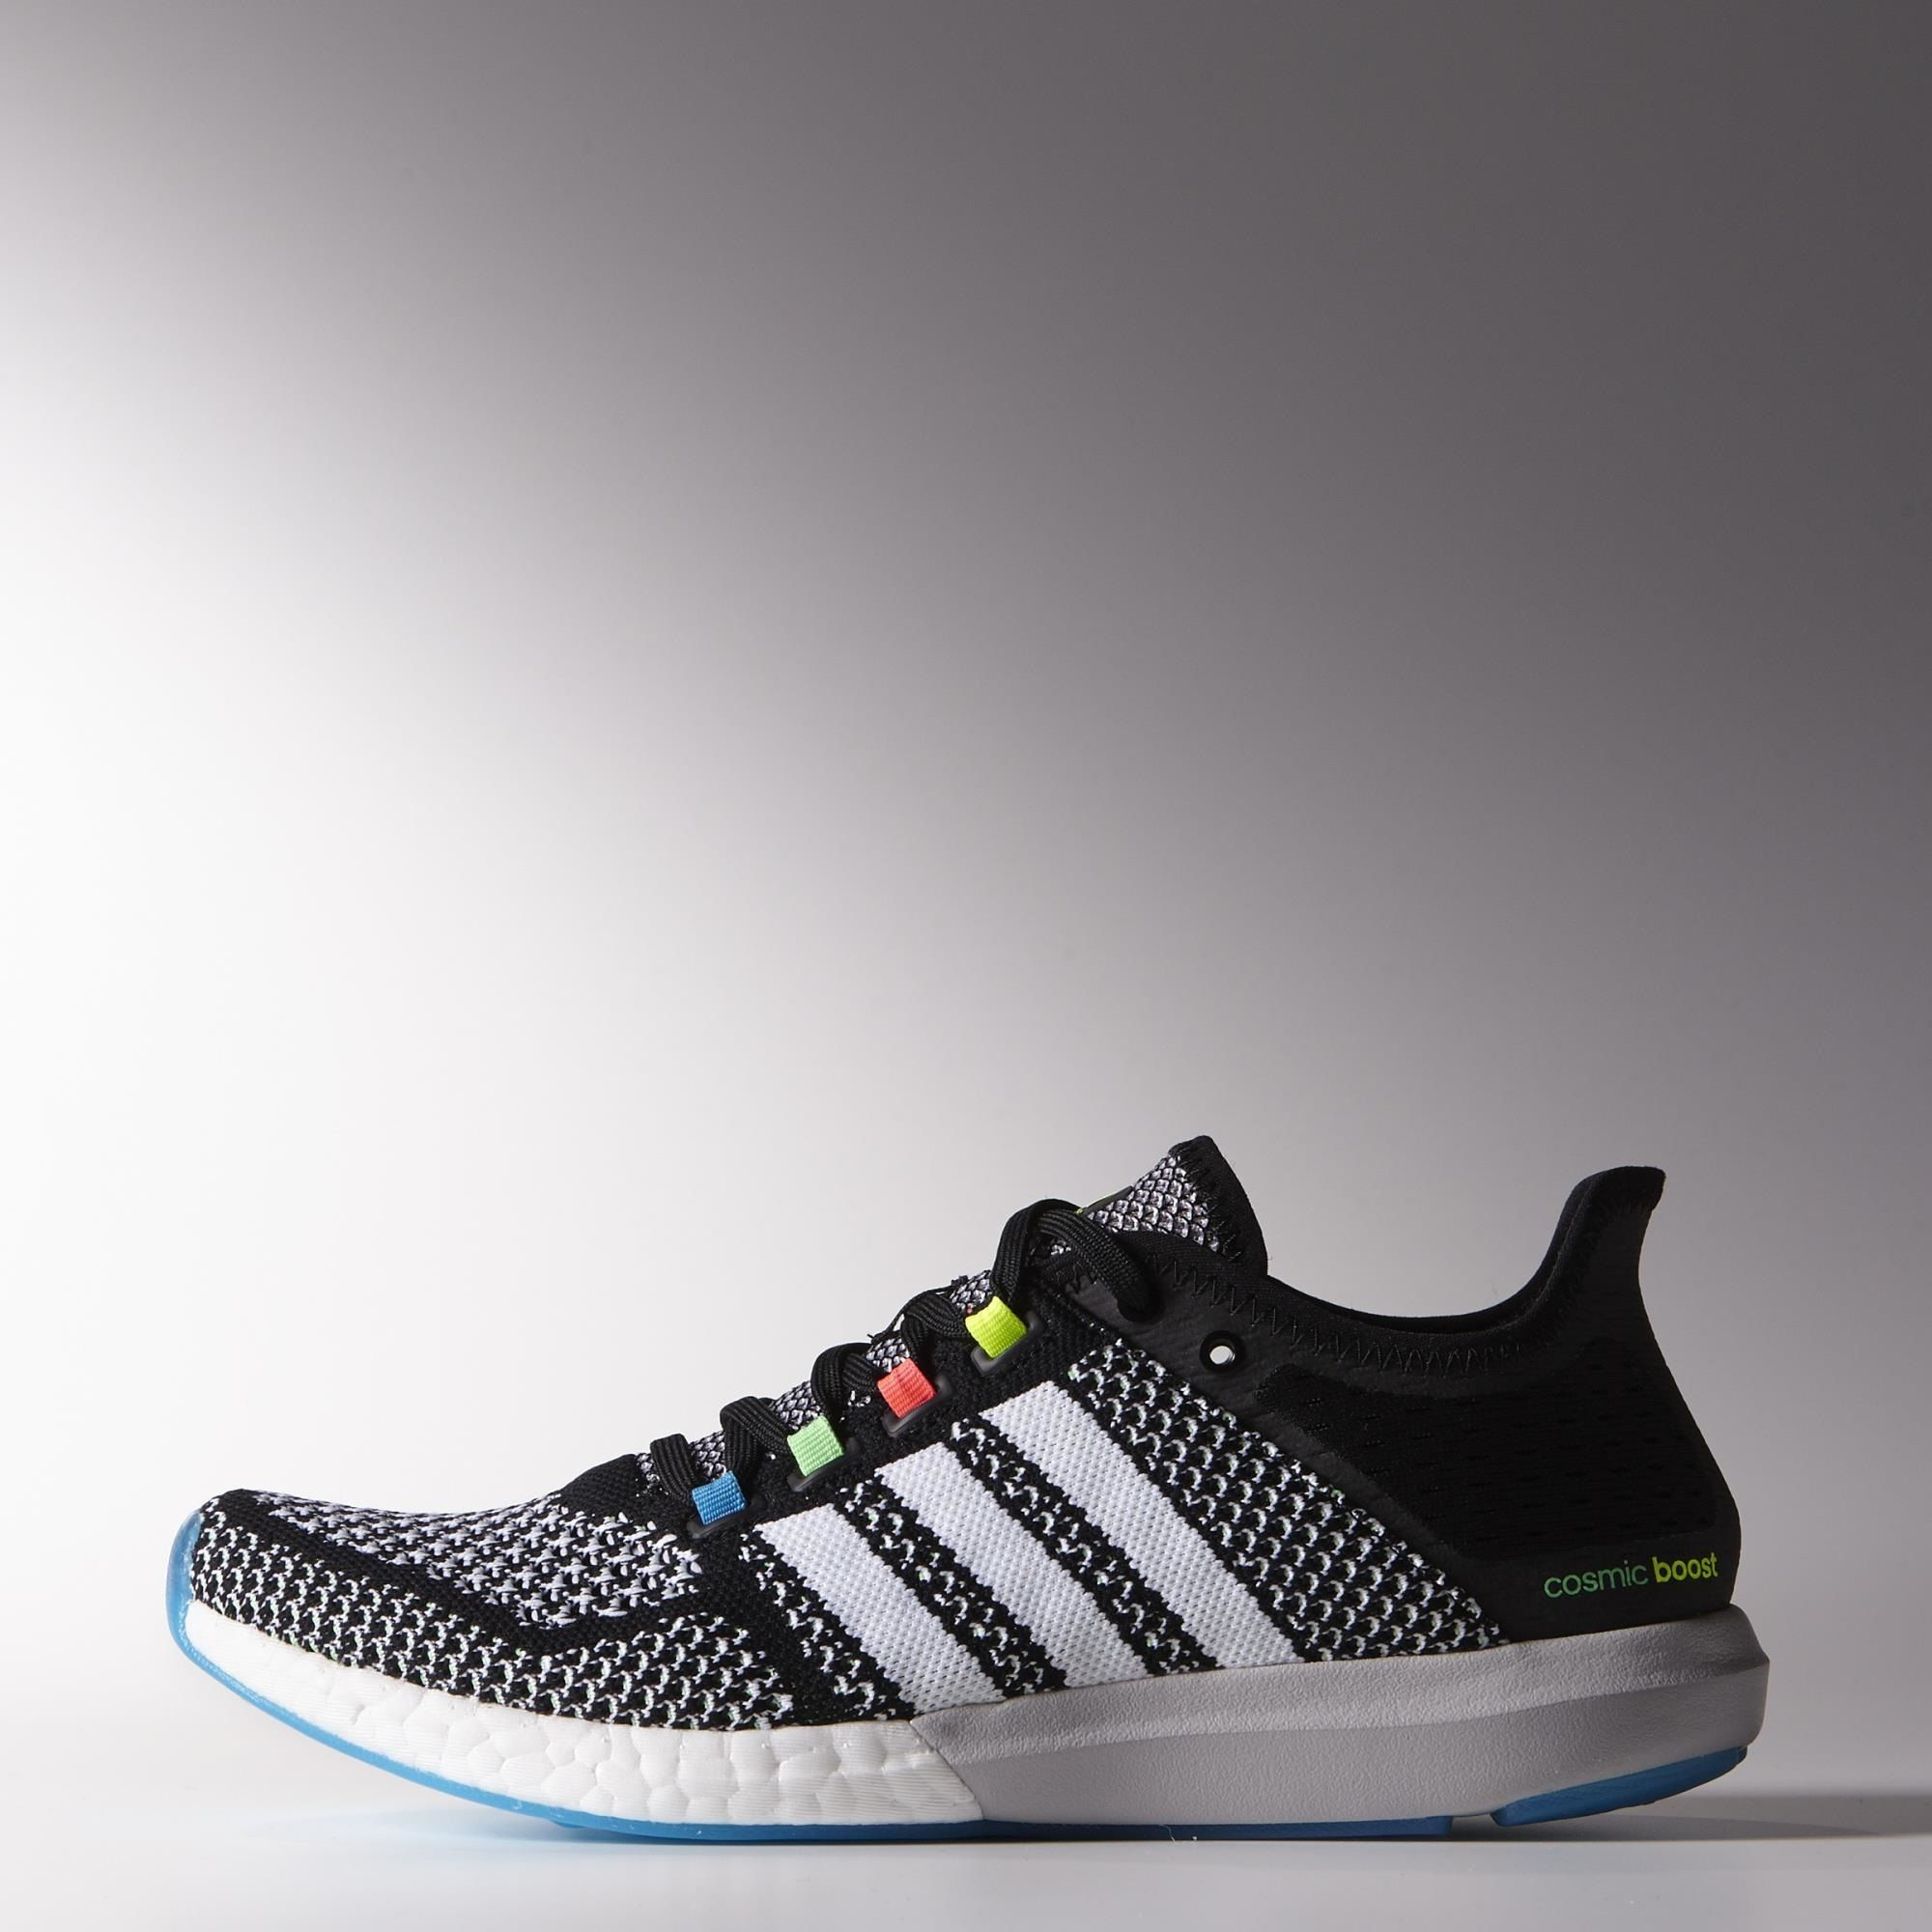 adidas Climachill Cosmic Boost Shoes | adidas US | Adidas running ...